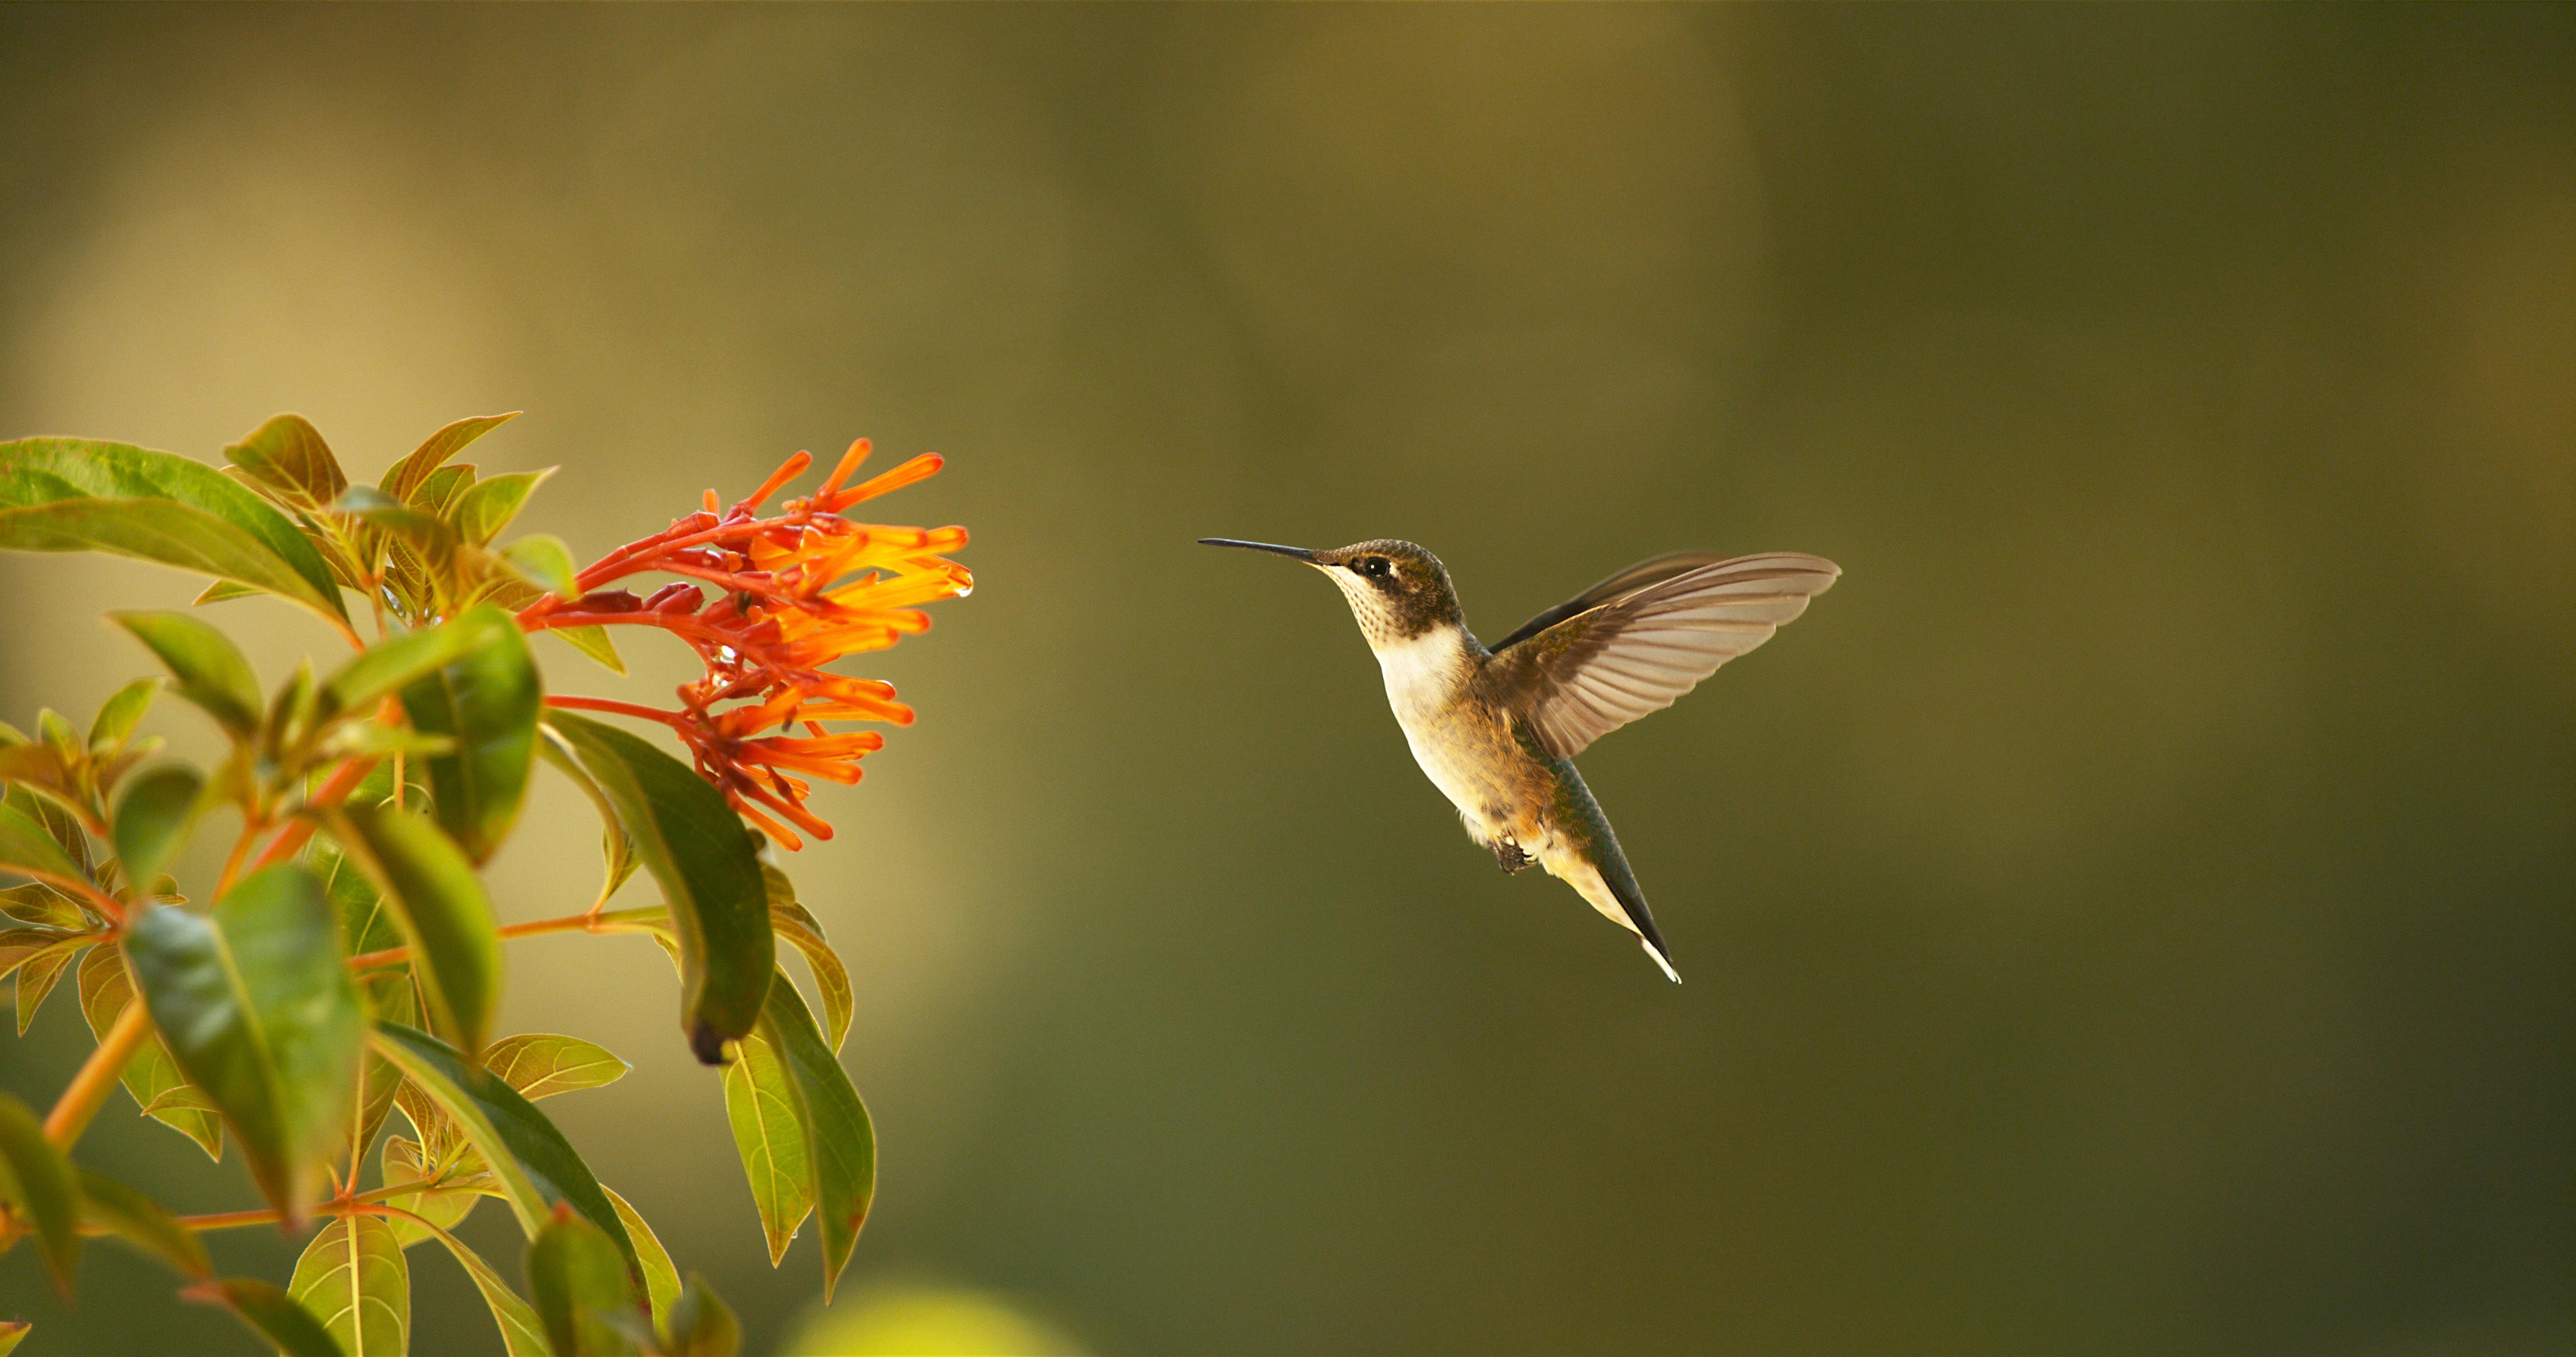 Ruby-throated hummingbird (Archilochus colubris) seems to stop in mid-air as it approaches a flower. Corpus Christi, TX.